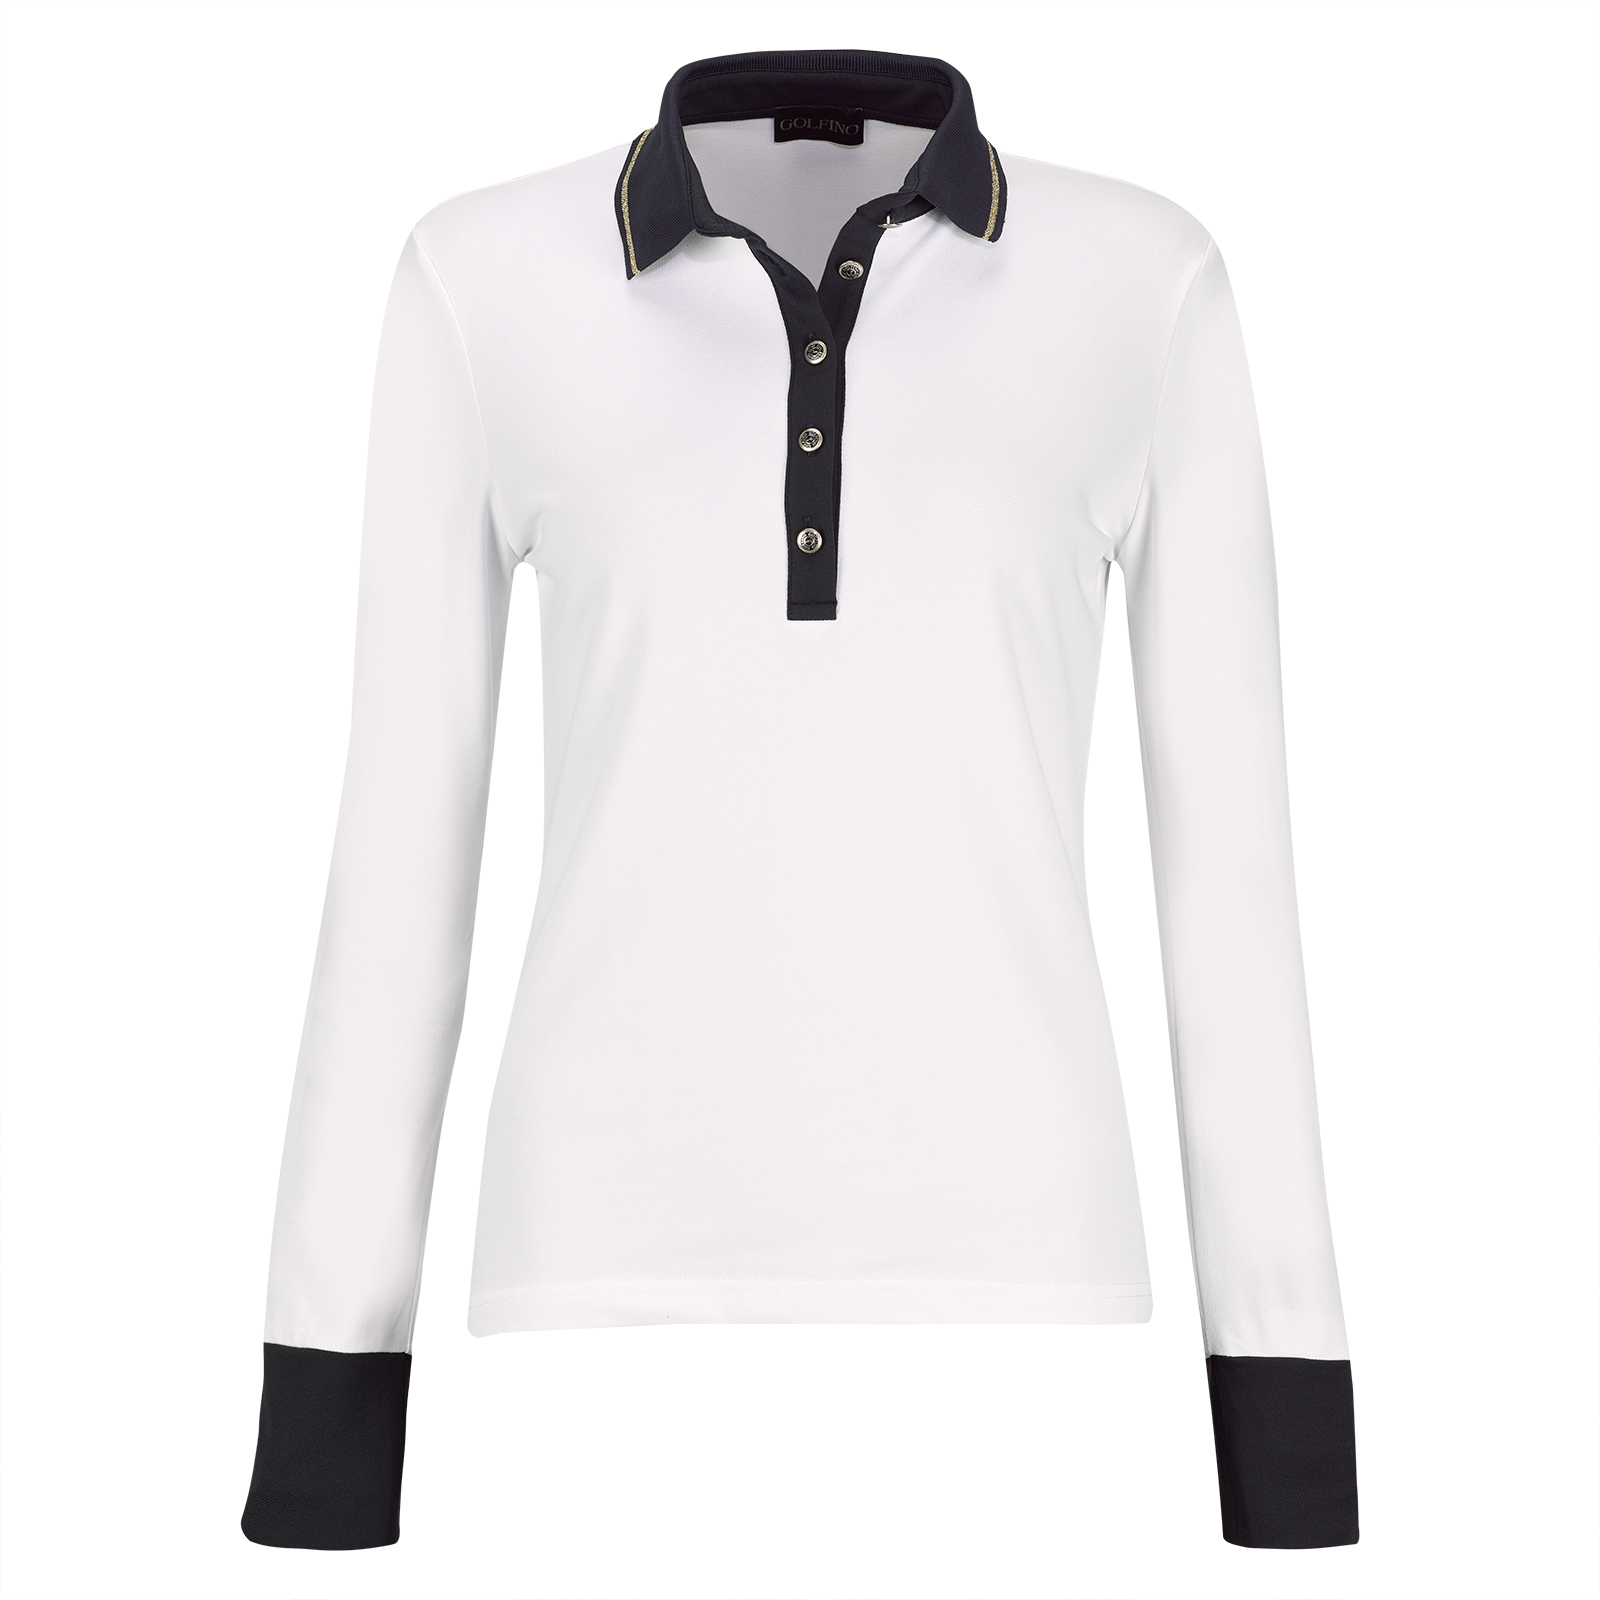 Premium casual long-sleeve ladies' polo with Sun Protection